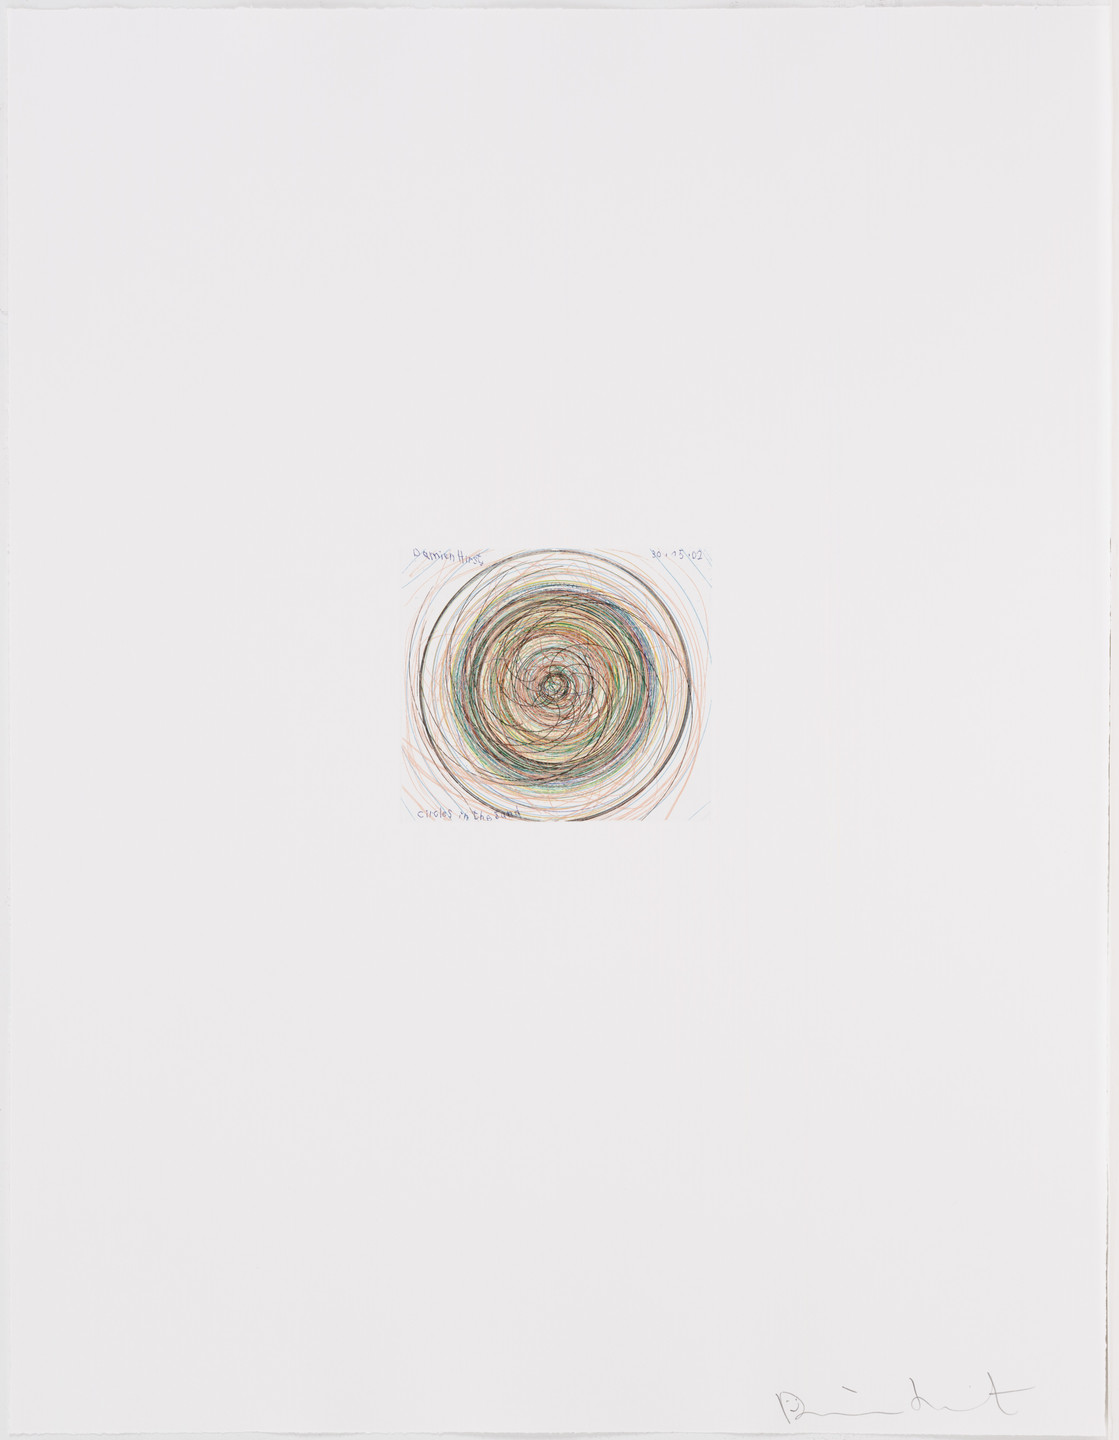 Damien Hirst. Circles in the Sand from In a Spin, the Action of the World on Things, Volume I. 2002